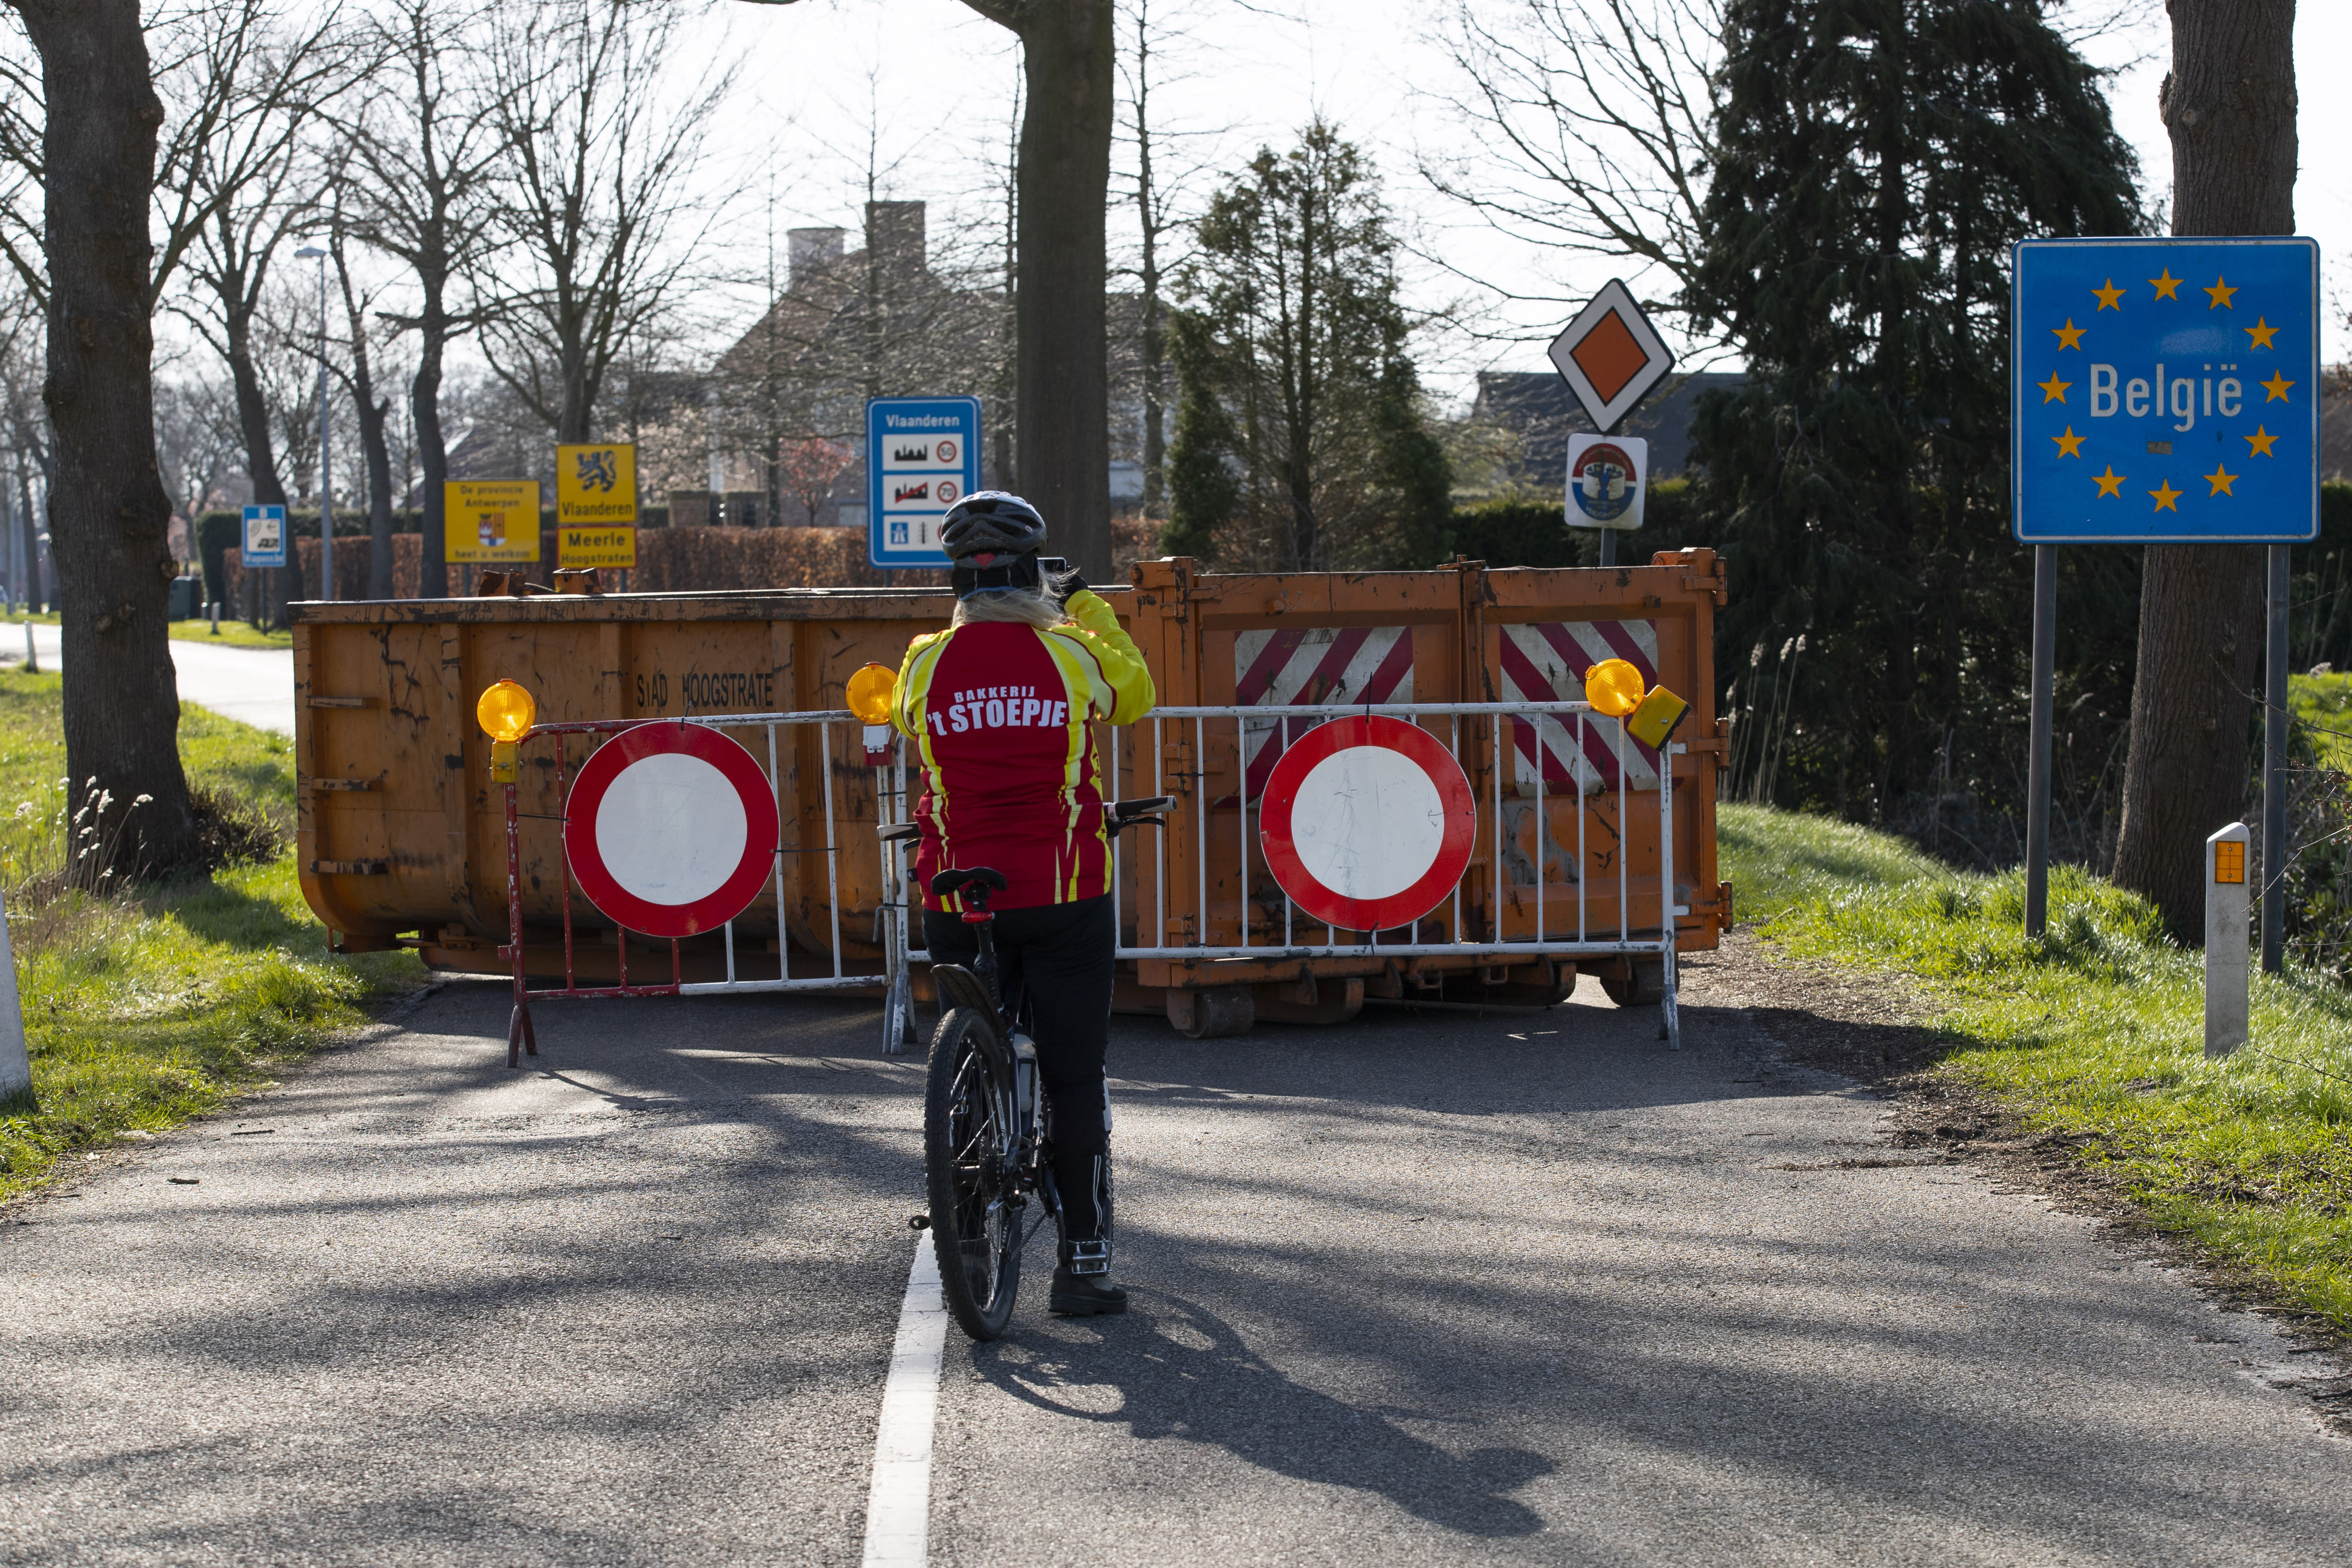 Dutch order bars, restaurants closed over pandemic fears